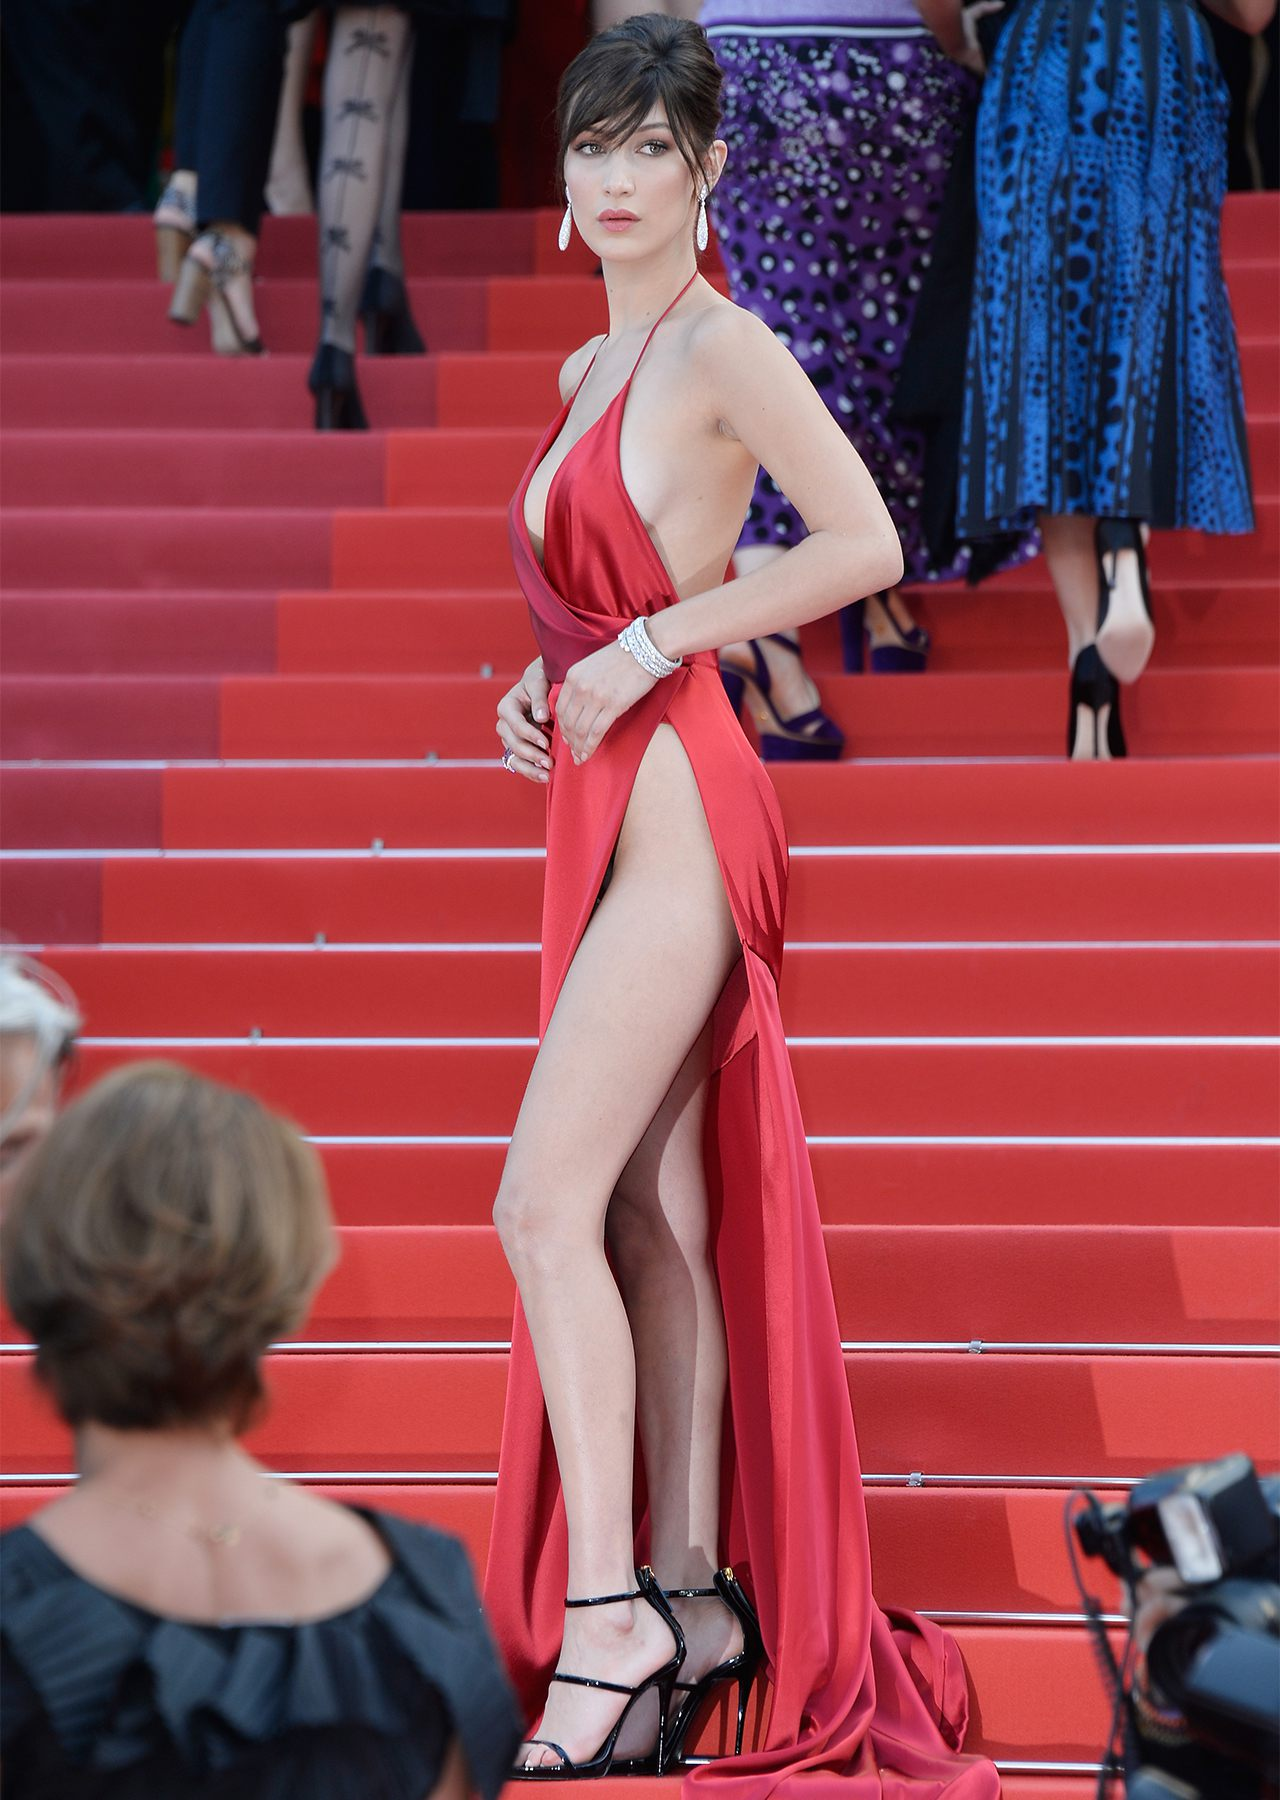 1280_bella_hadid_unknown_girl_premiere_cannes_full_1